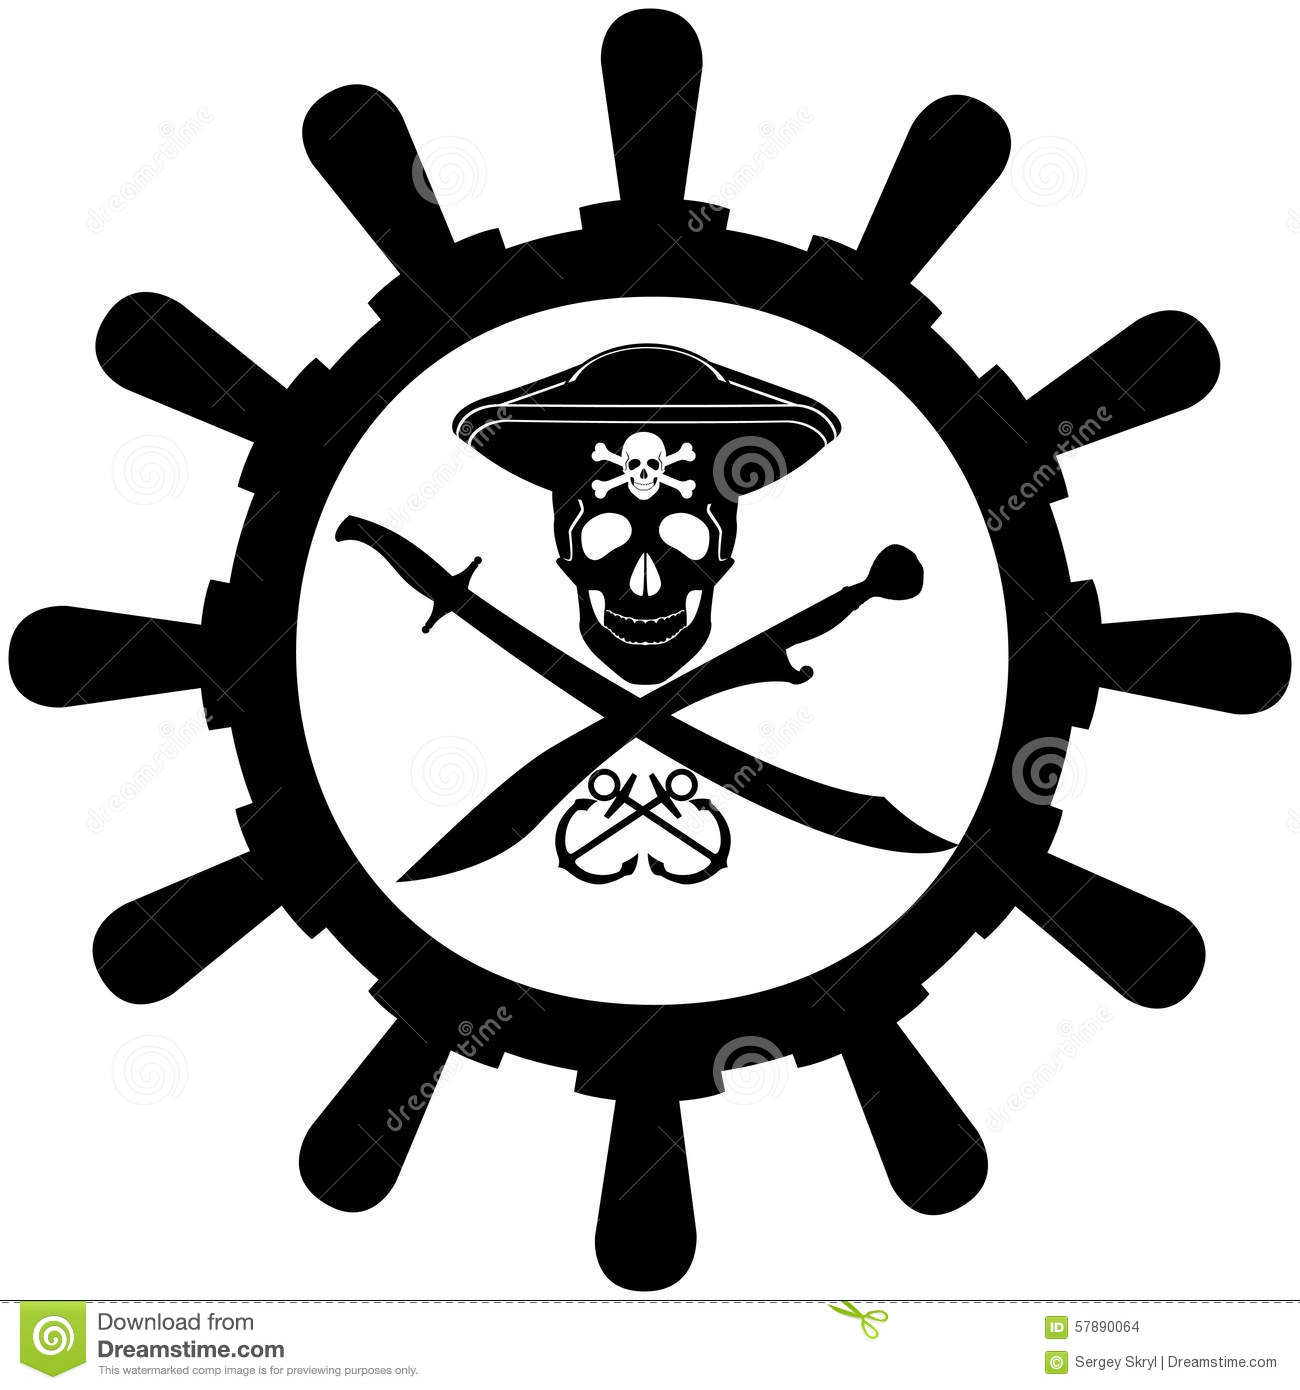 Steering Wheel Of A Pirate Ship Stock Vector Image 57890064